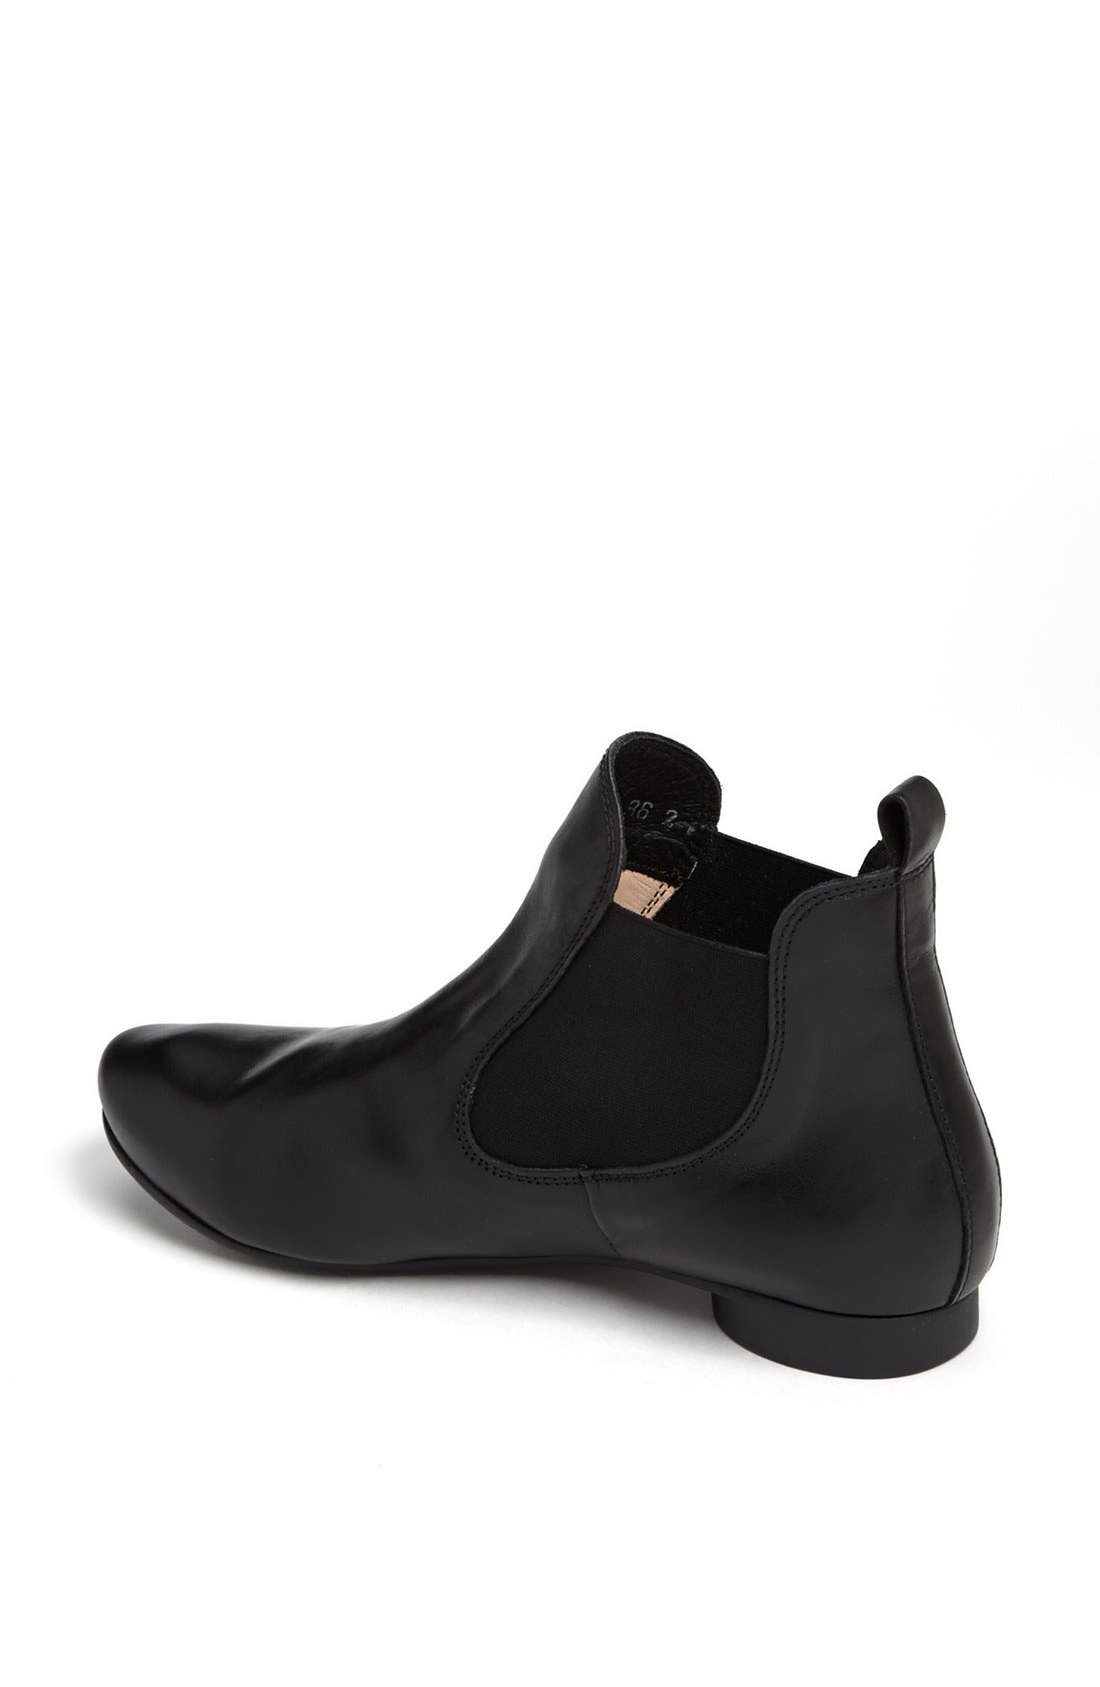 THINK!,                             Chelsea Boot,                             Alternate thumbnail 4, color,                             001